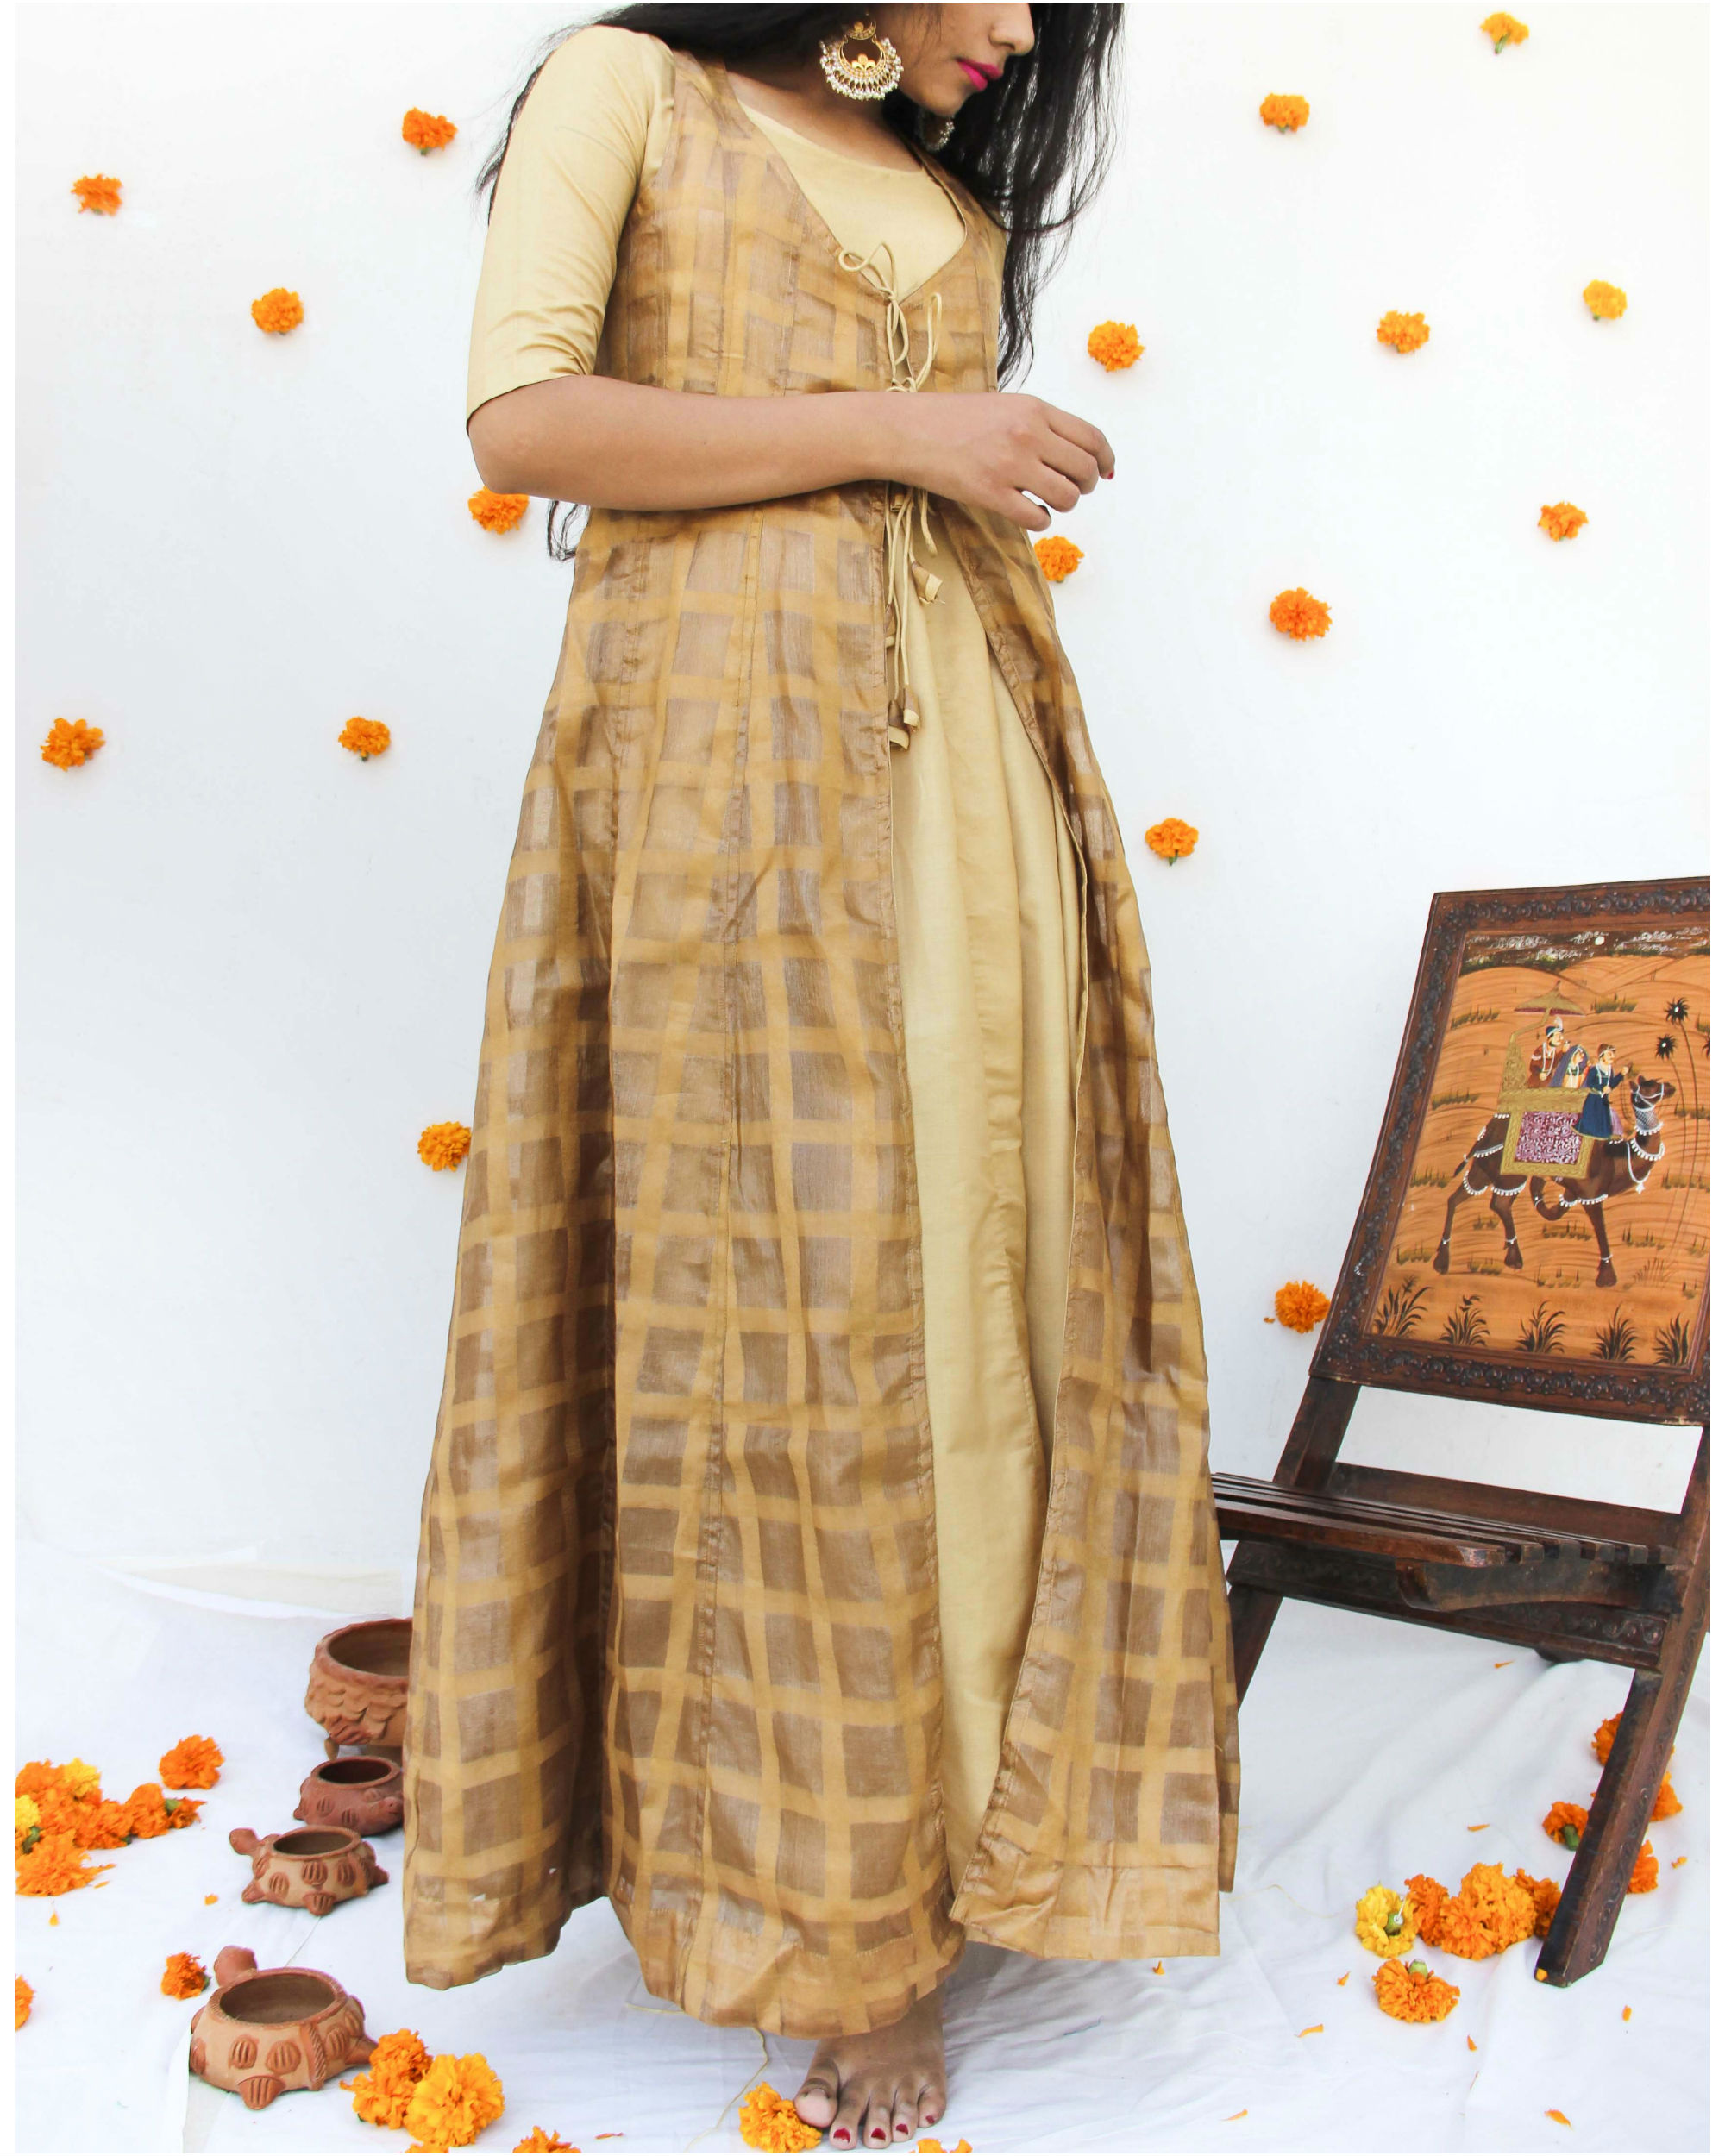 Golden gown with jacket